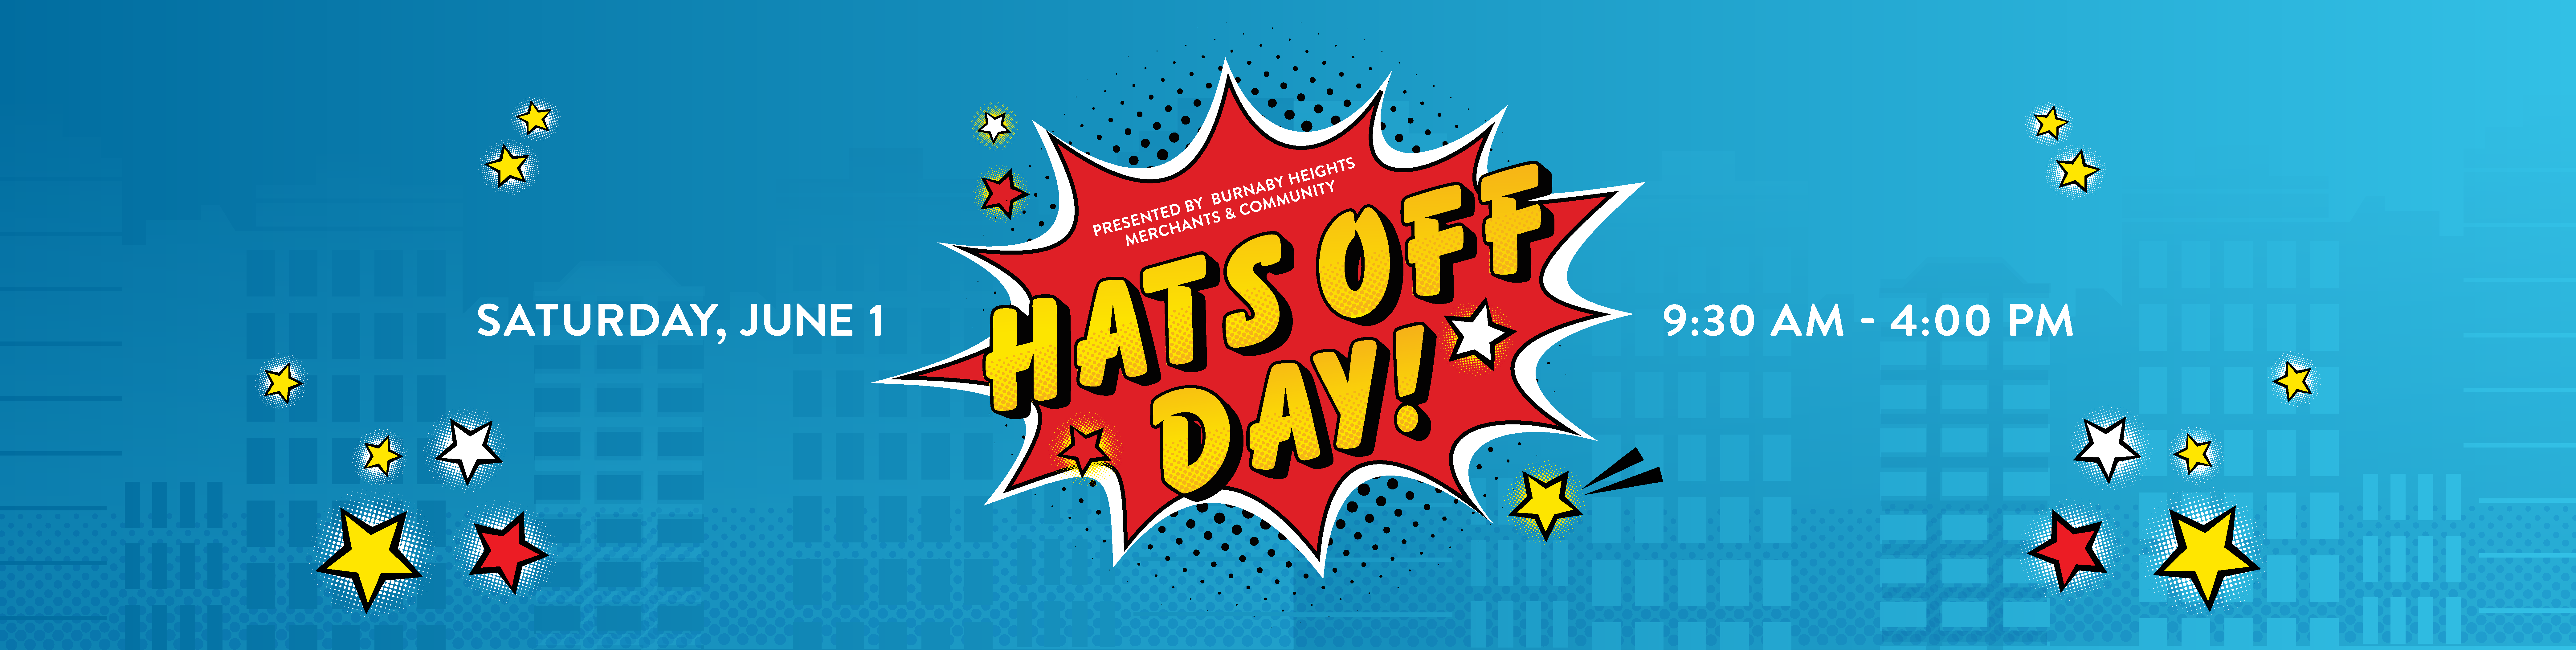 Hats Off Day 2019!